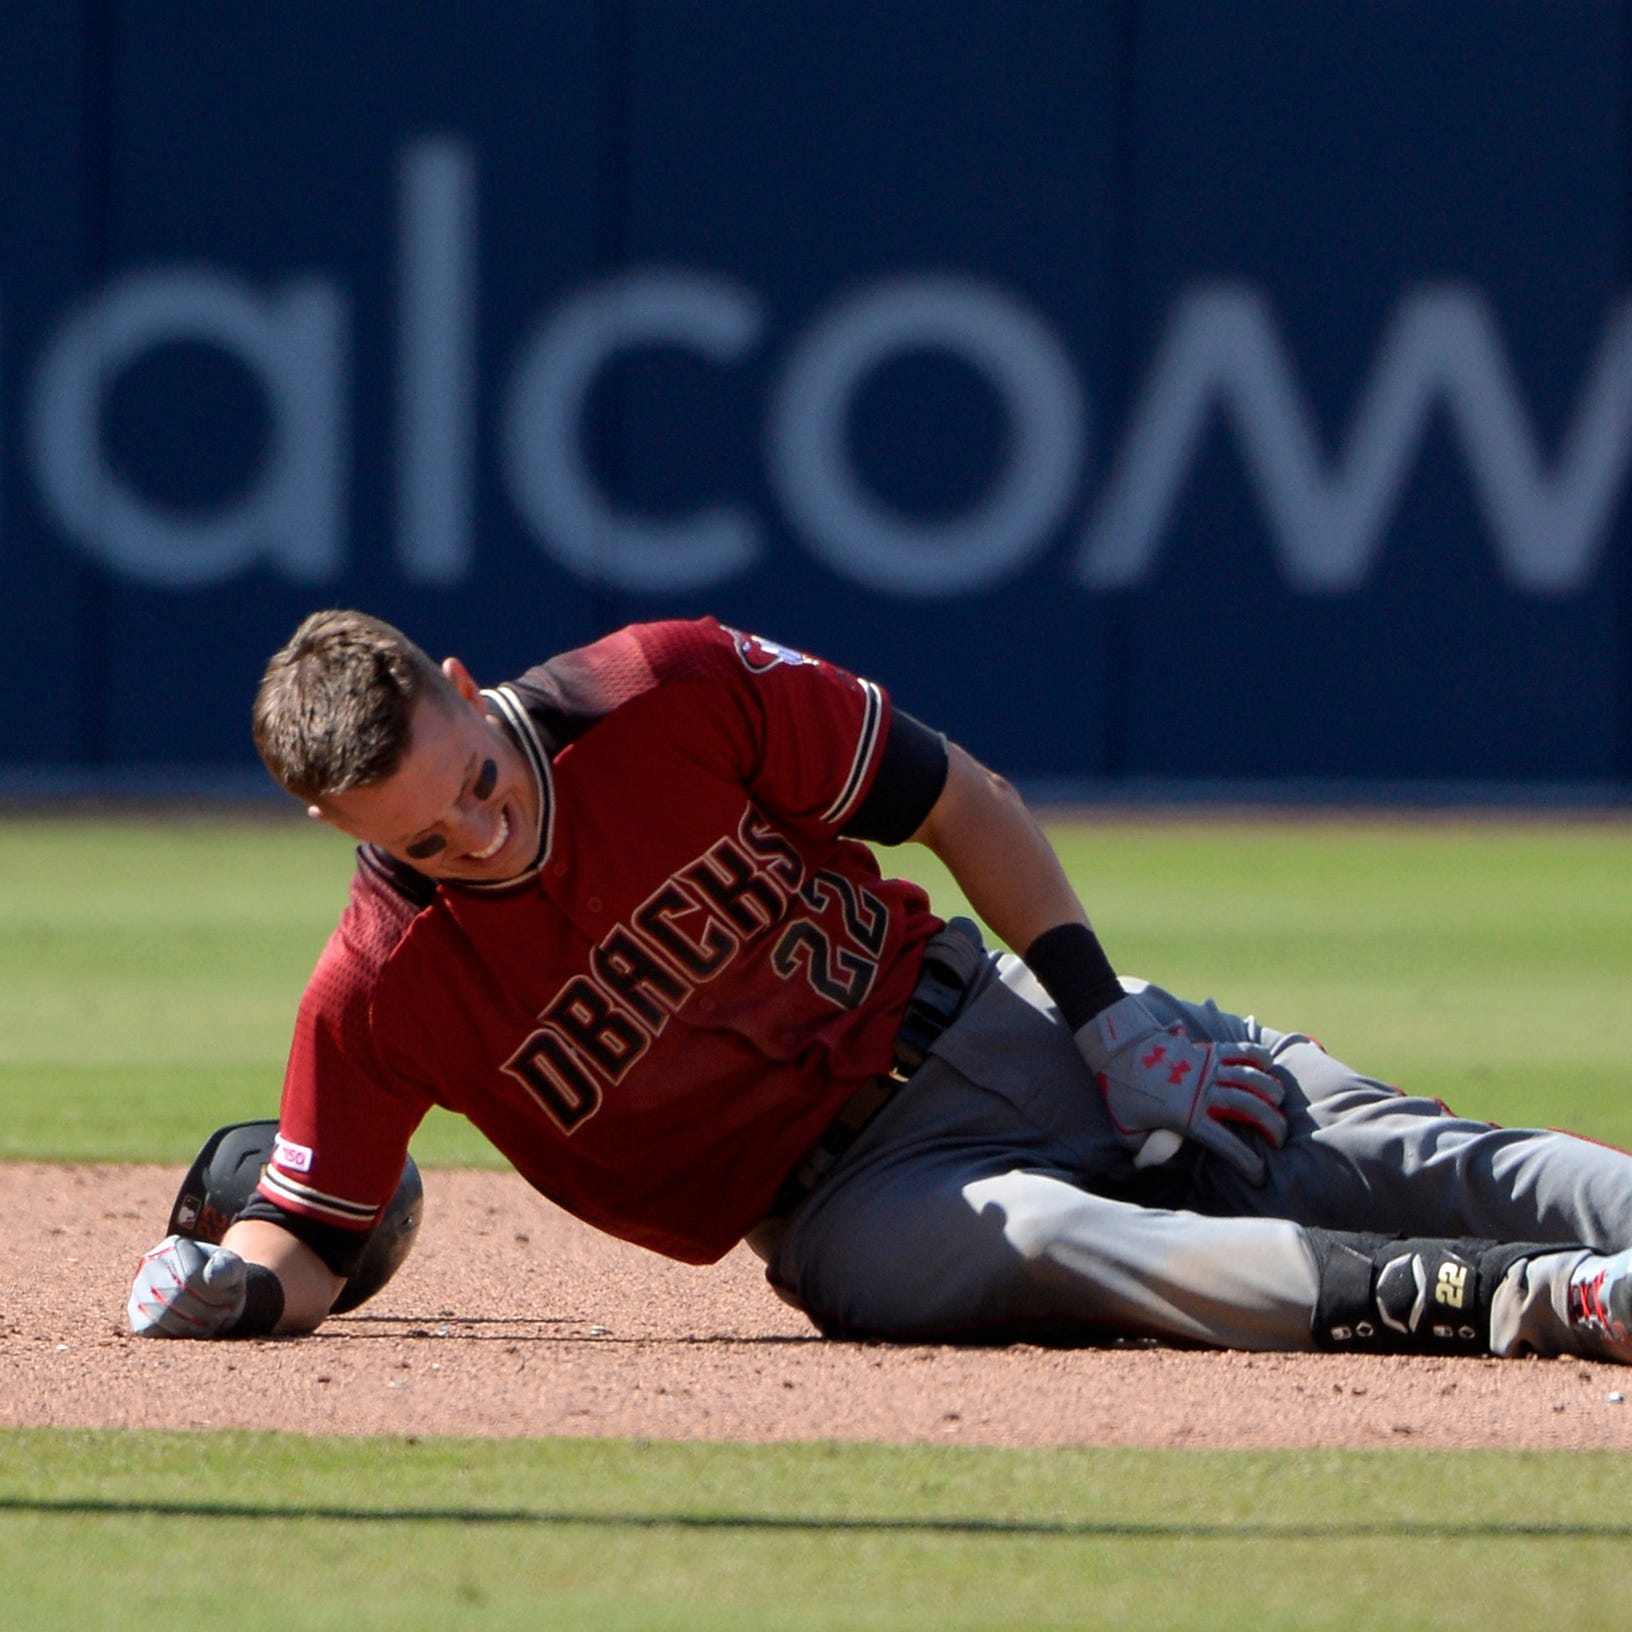 Jake Lamb's injury a final blow on Diamondbacks' opening trip